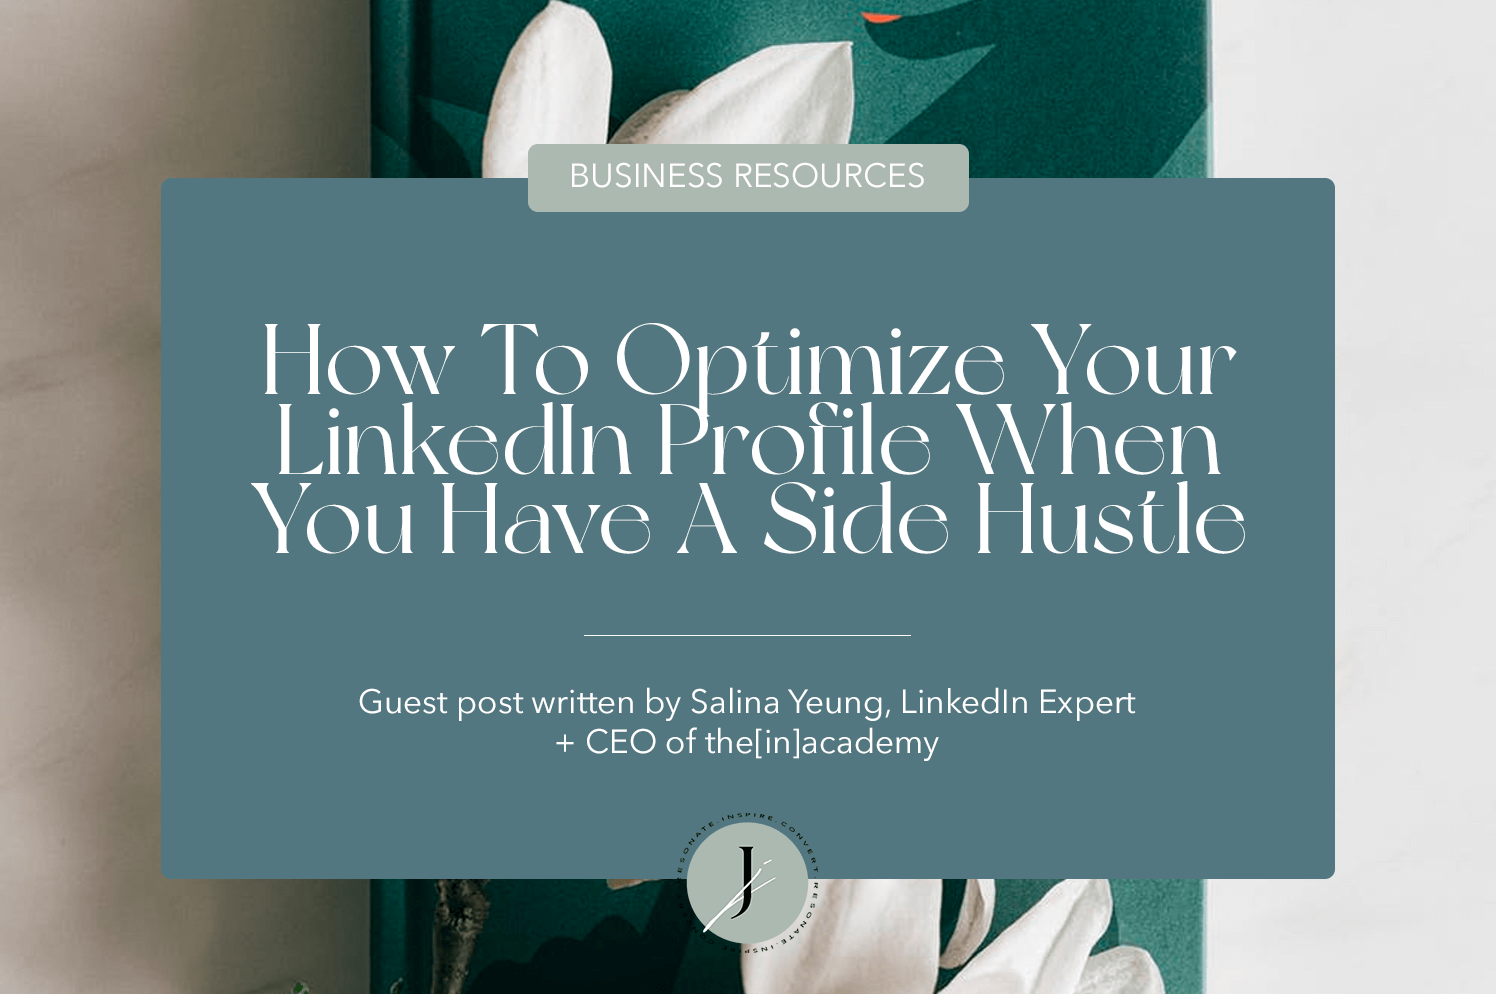 JOUHCO - How To Optimize Your LinkedIn Profile When You Have A Side Hustle - Salina Yeung